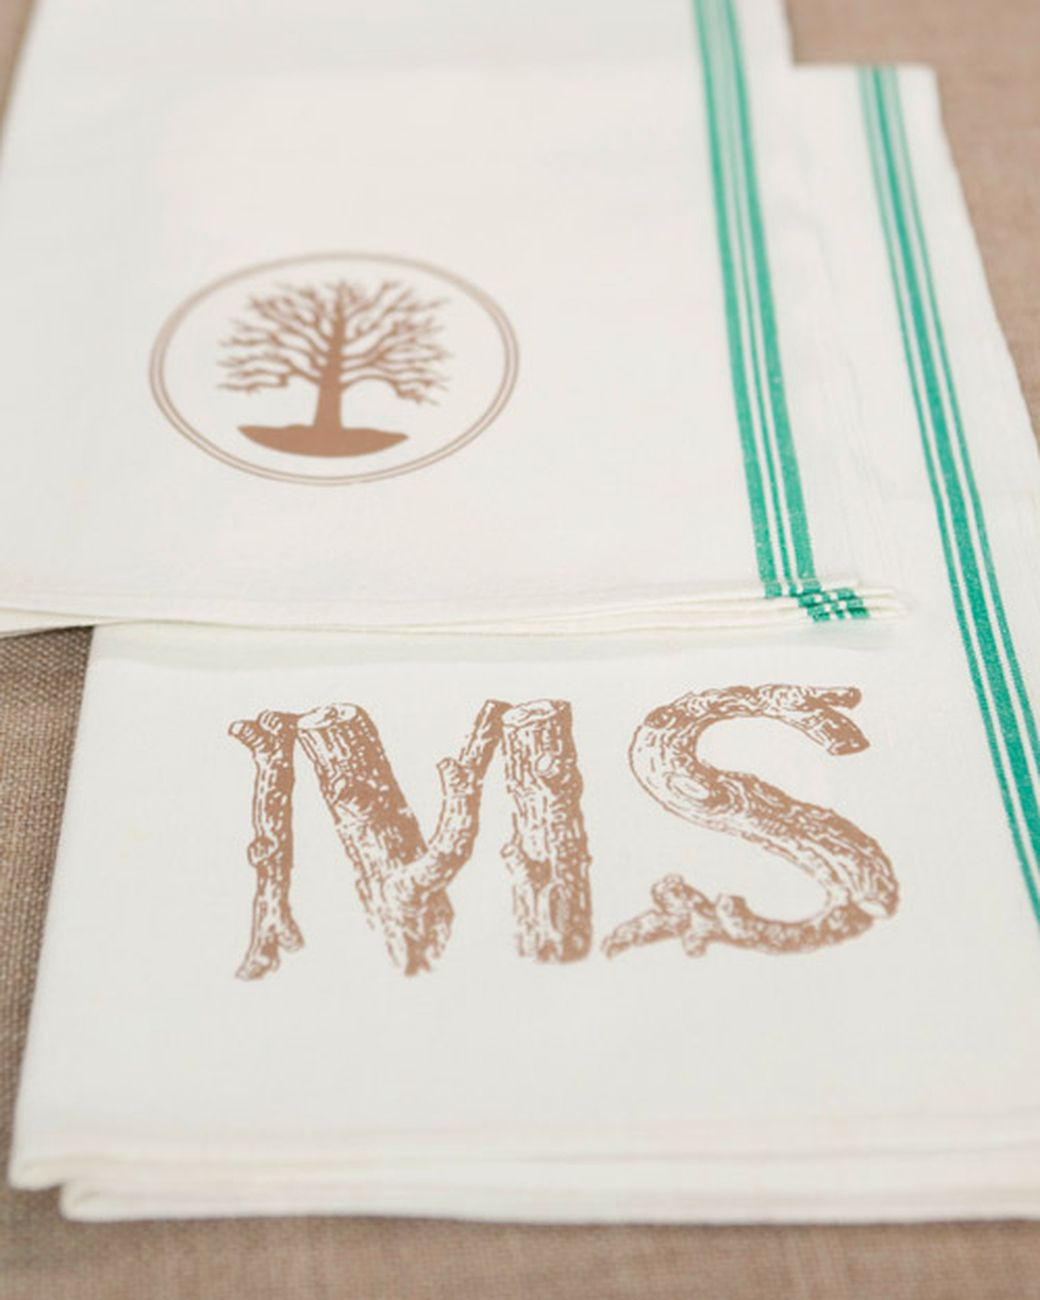 Personalized Tea Towel Craft | Towel crafts, Towels and Clip art